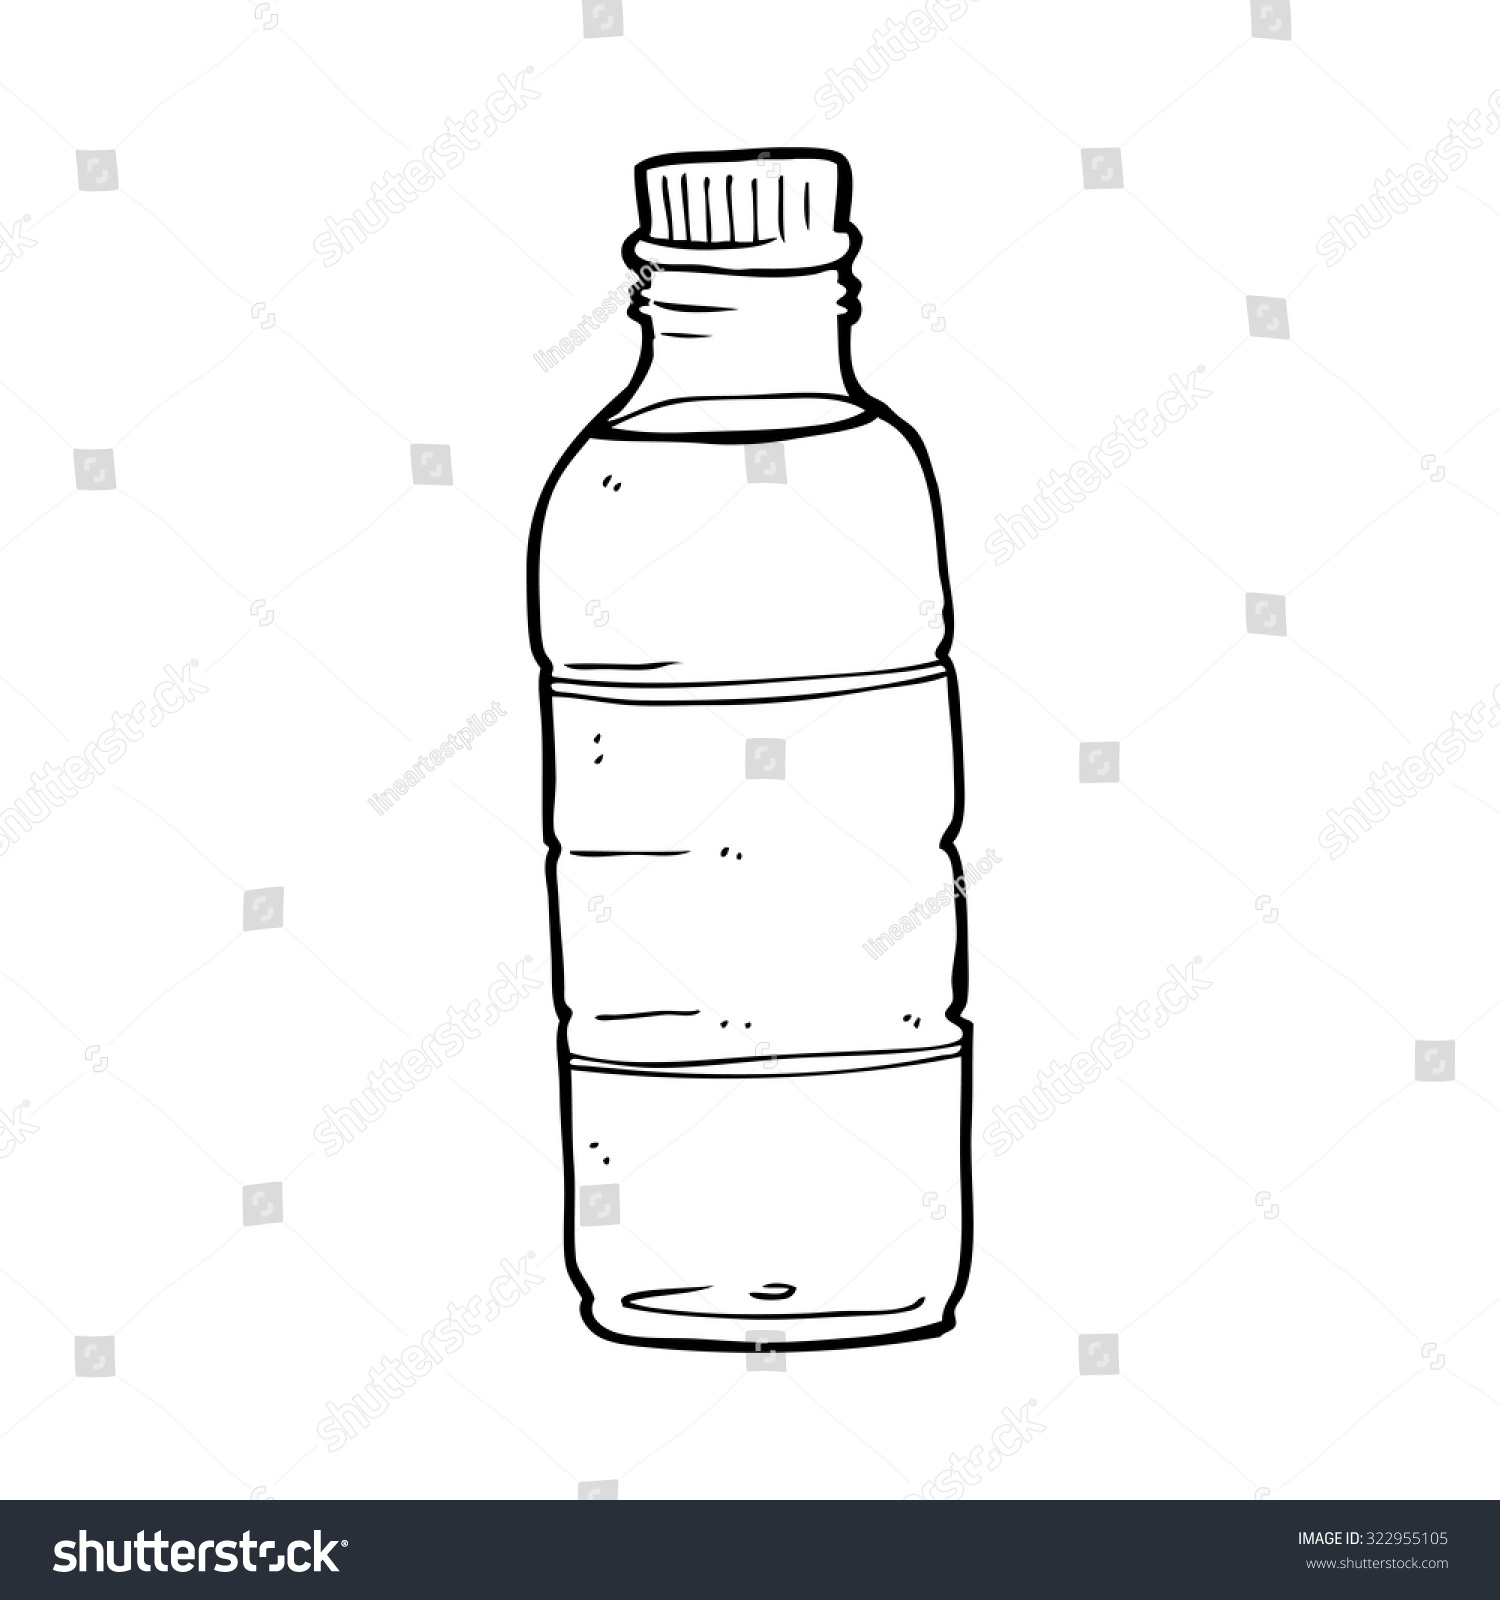 Line Drawing Water : Simple black and white line drawing cartoon water bottle